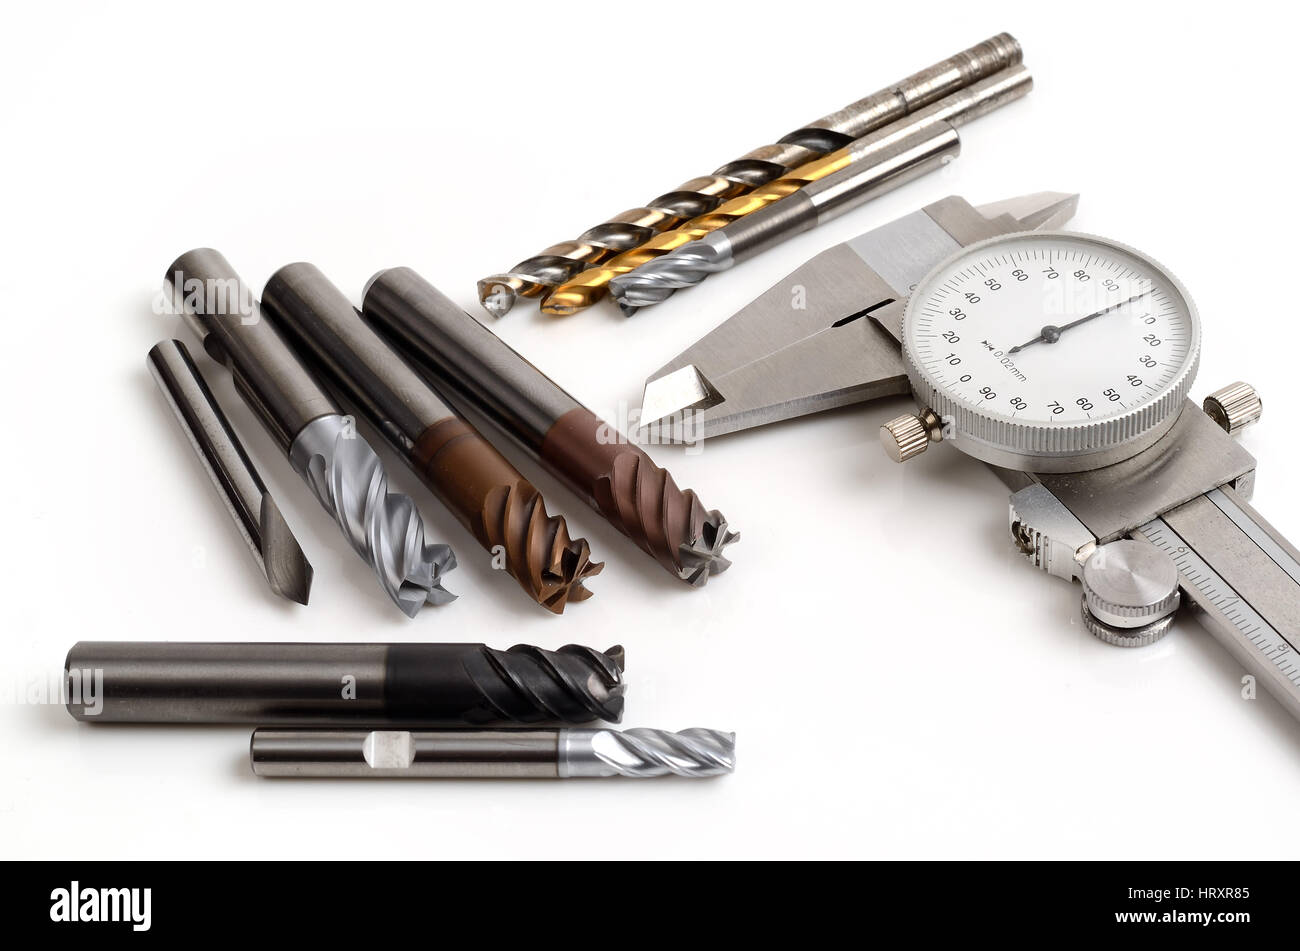 Metal milling tools for cnc machine on white background - Stock Image